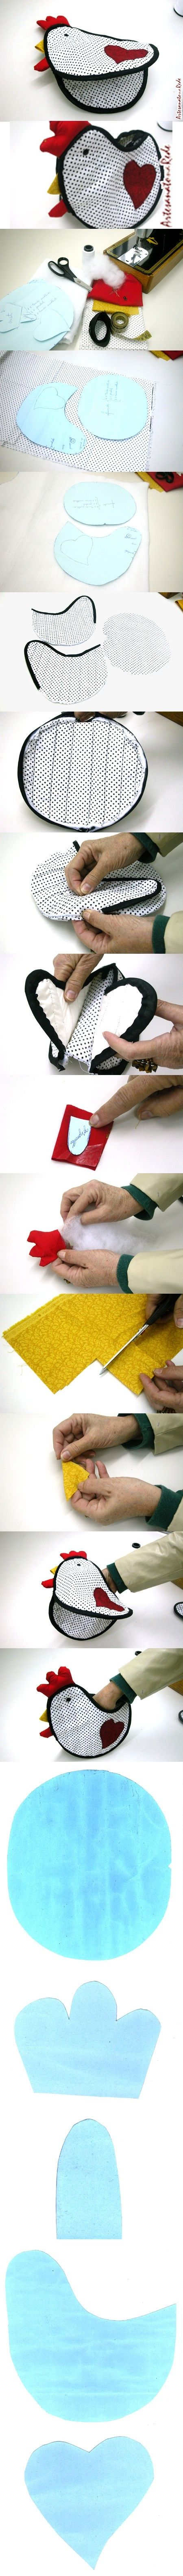 How to make chicken potholders - step by step images. - - - - - - - - - Pegador de Panelas galinha